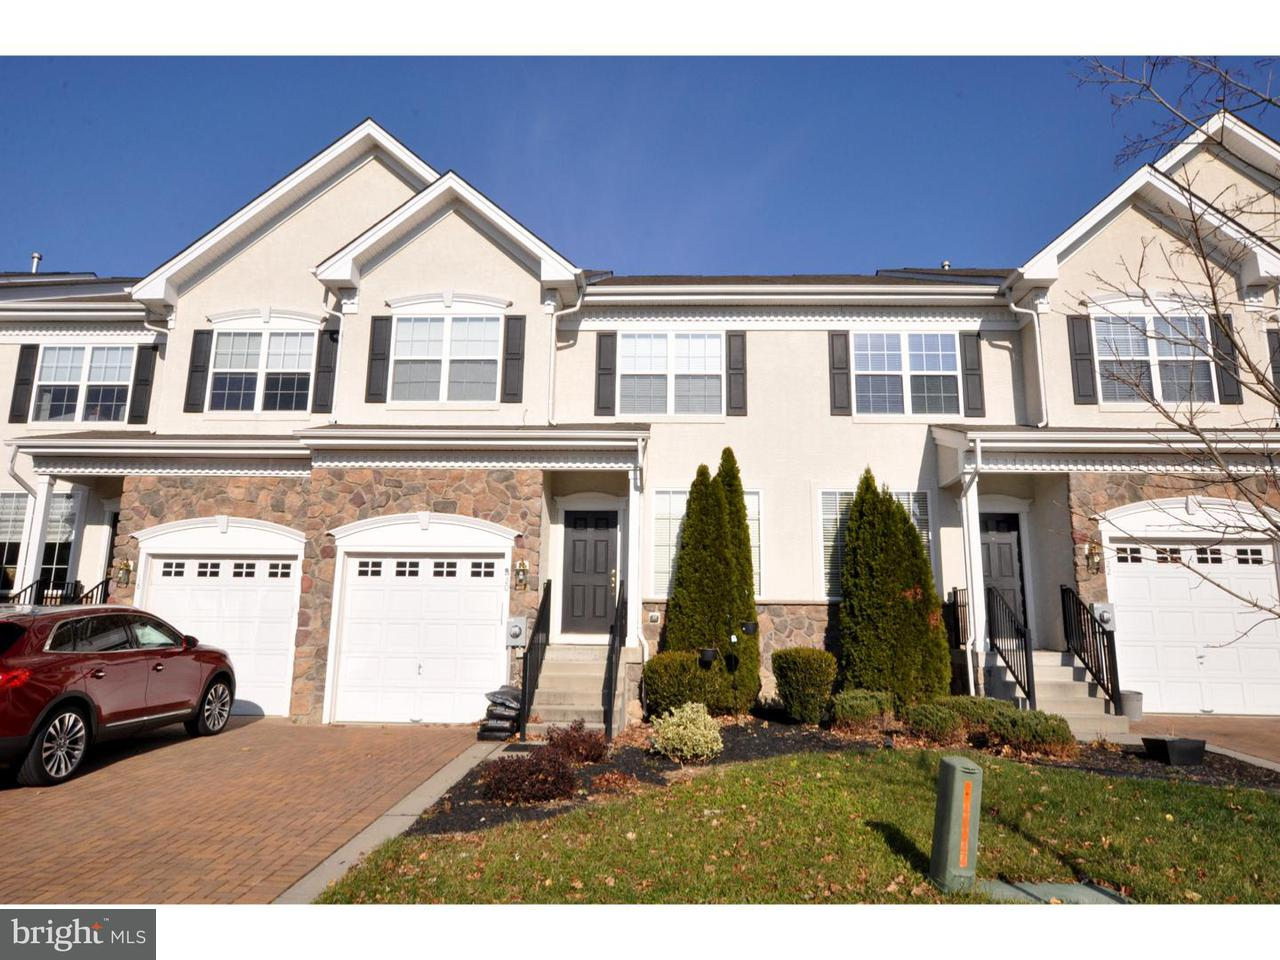 Townhouse for Sale at 20 KINGSWOOD Court Westampton Township, New Jersey 08060 United States